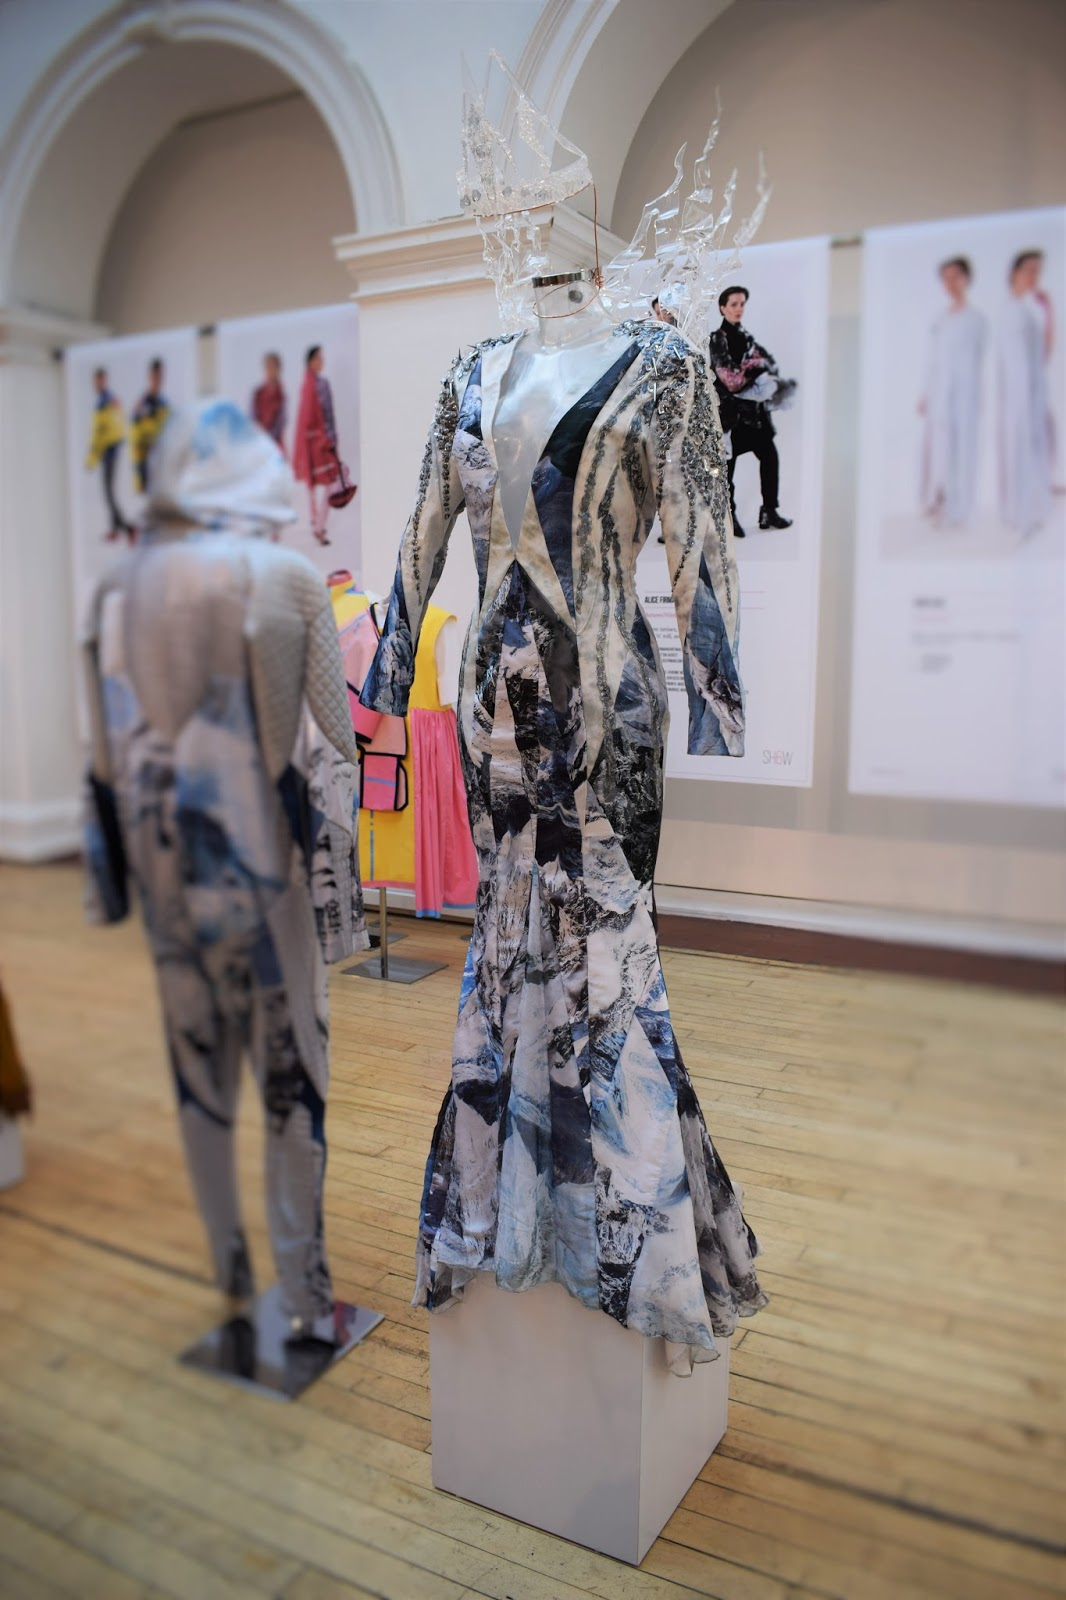 eca degree show 2016, edinburgh college of art graduate, rosie ratcliffe costume deisgn, emerging designers UK